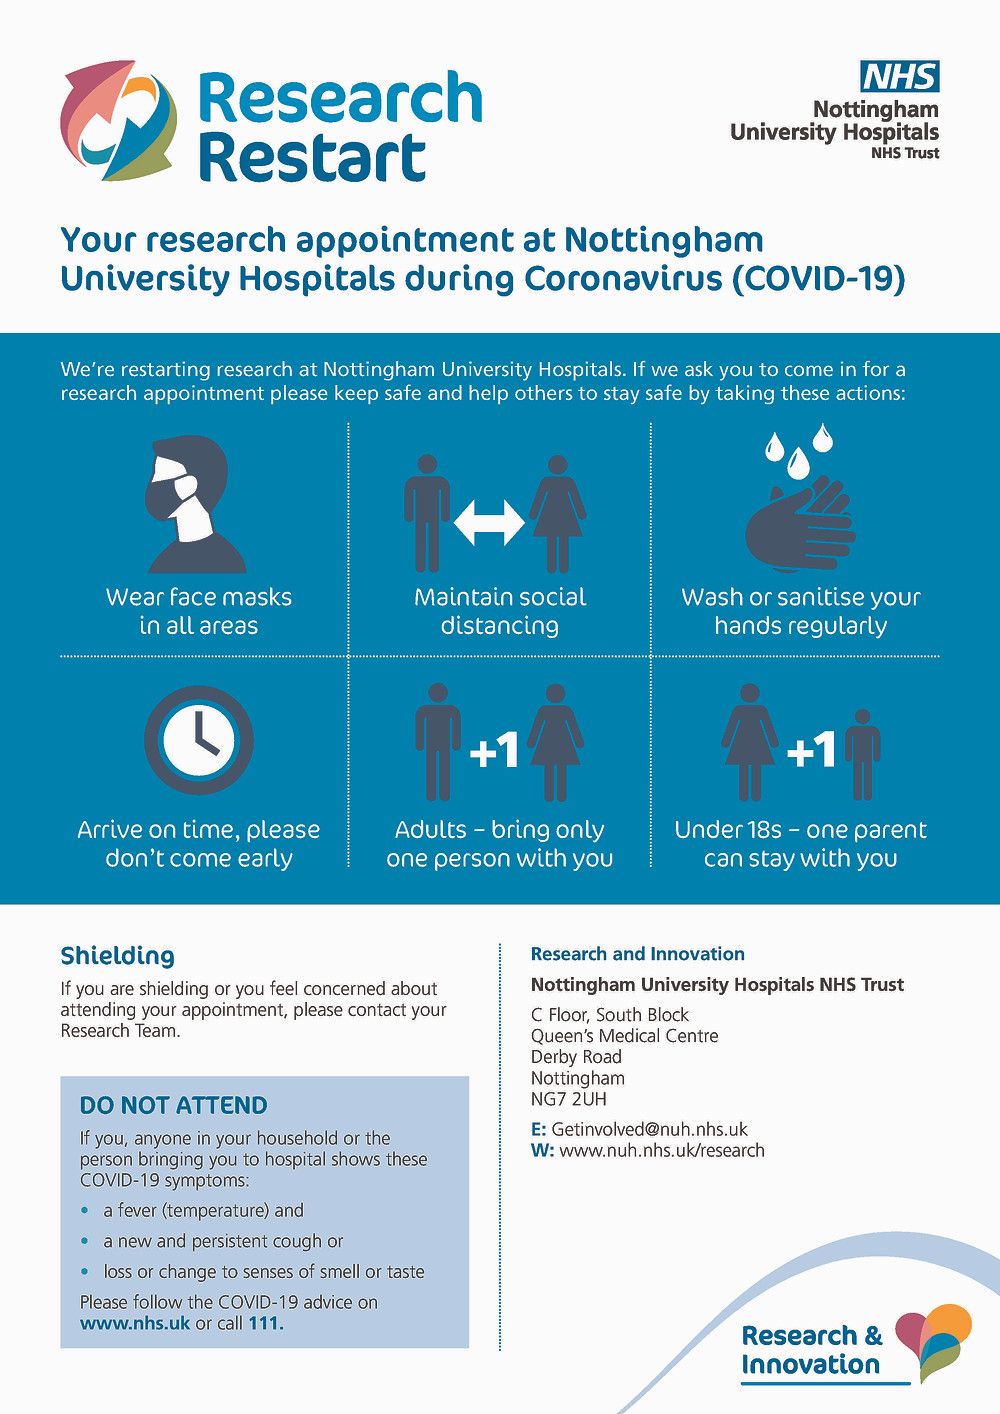 Information on keeping research patients/participants and staff safe during COVID-19